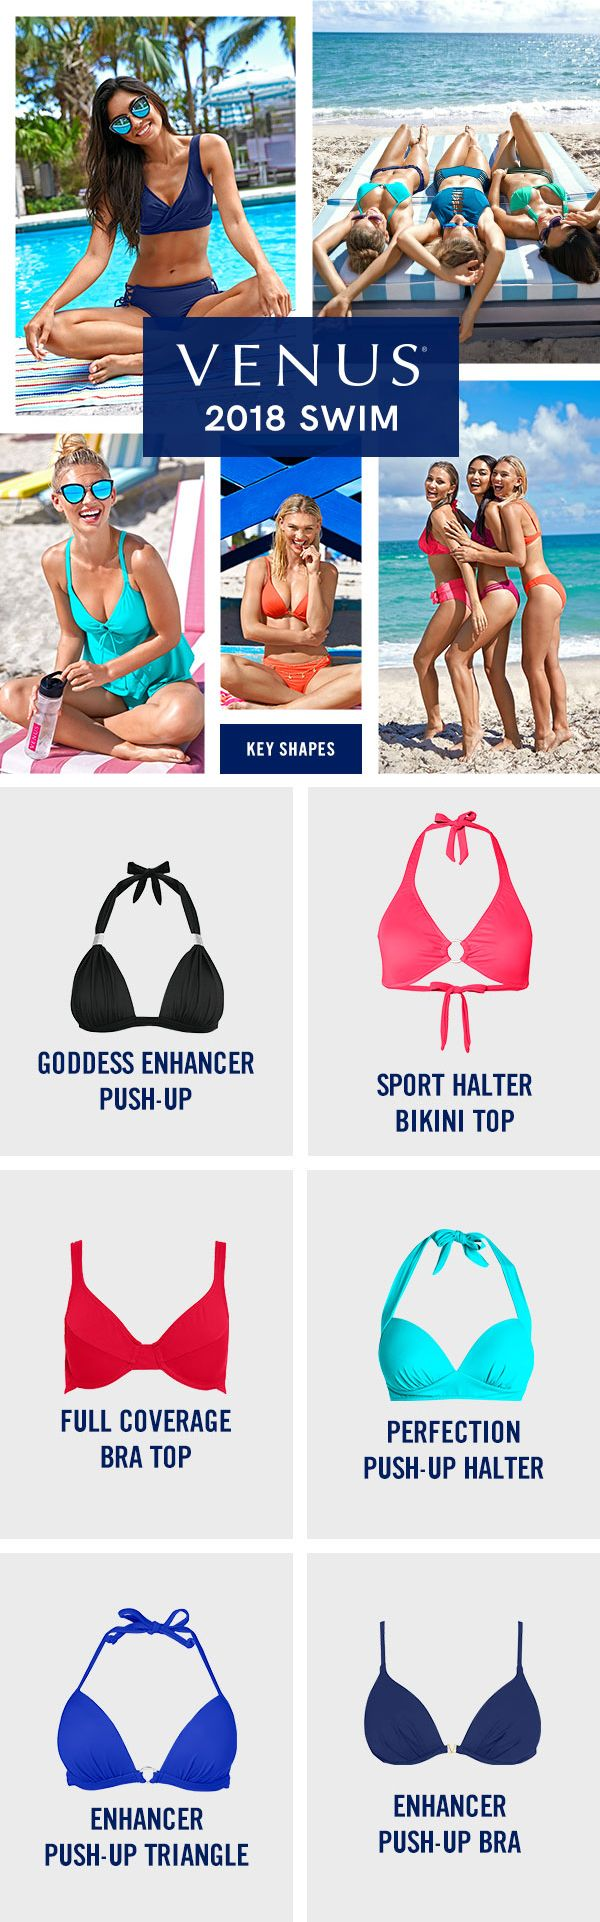 Introducing 2018 swim! Mix and match any of our beautiful colors and suit styles to create your own unique look! #venusswimwear #bikini